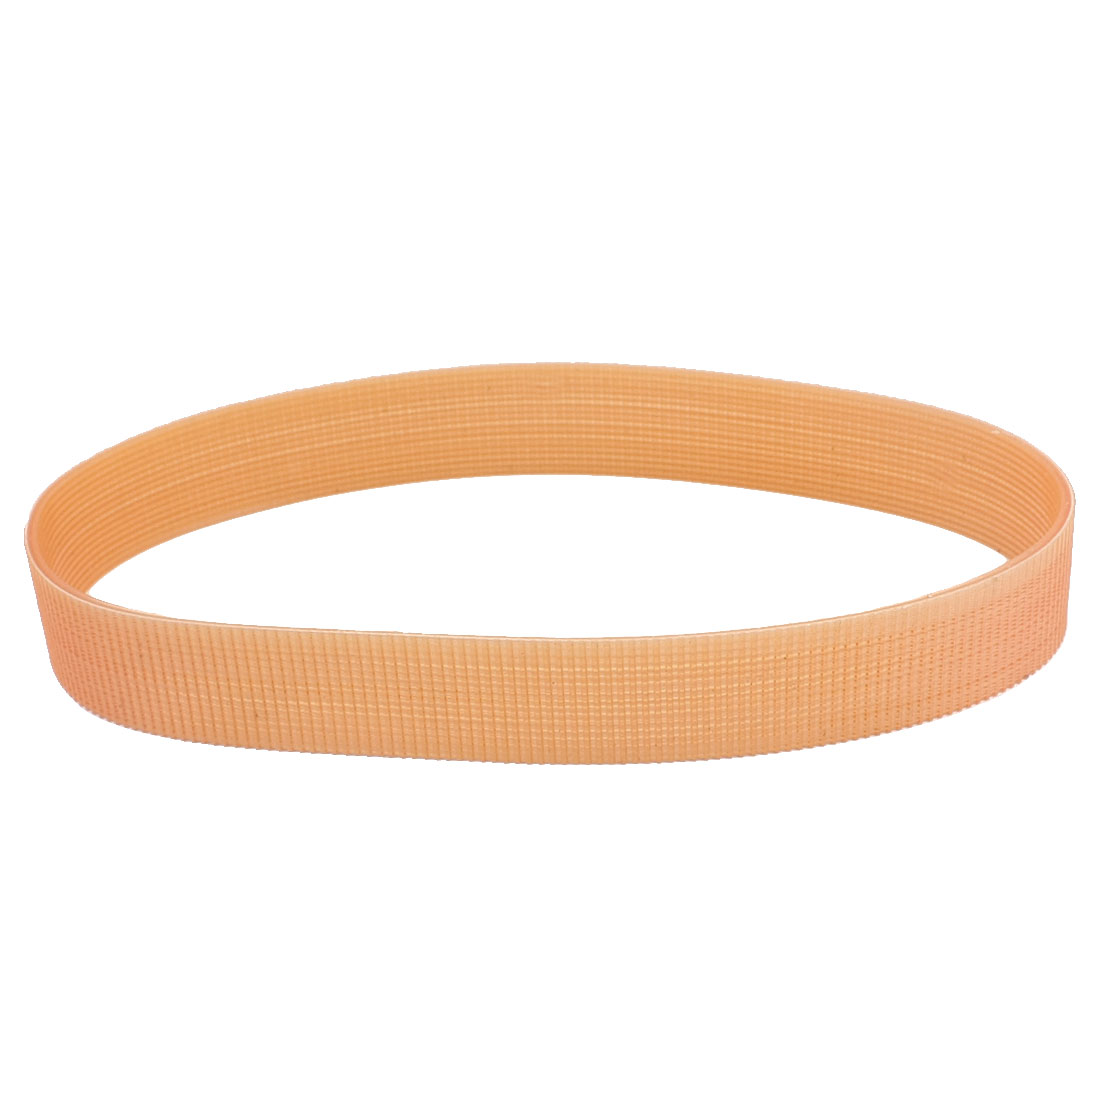 Orange Rubber Drive Driving Belt for 255 Electric Sawing Machine